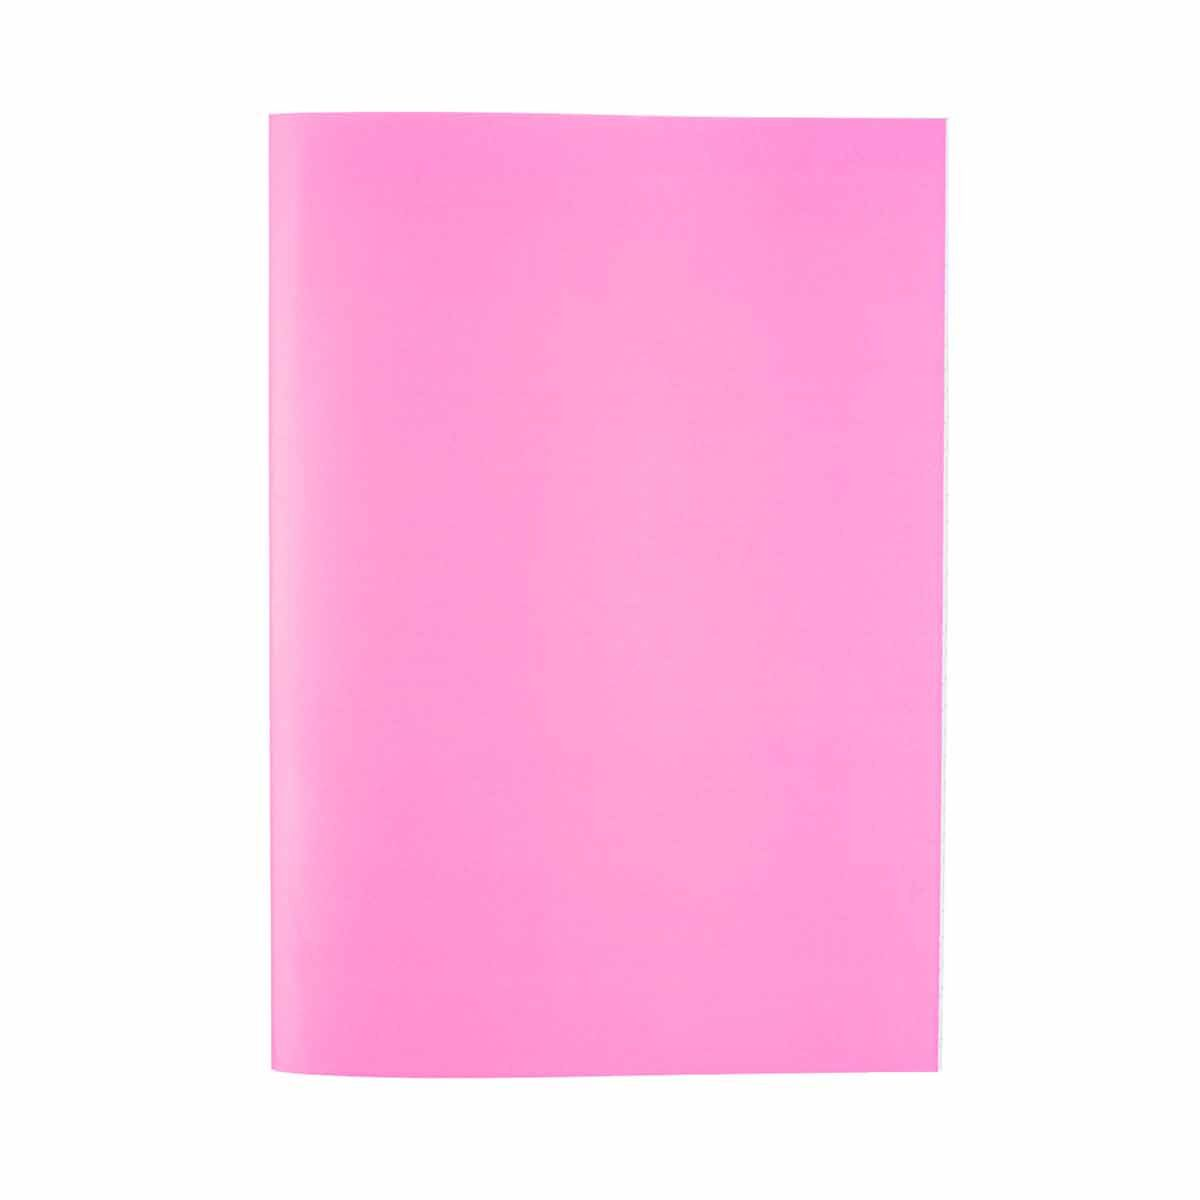 Exercise Book Ruled 80 Page Pink